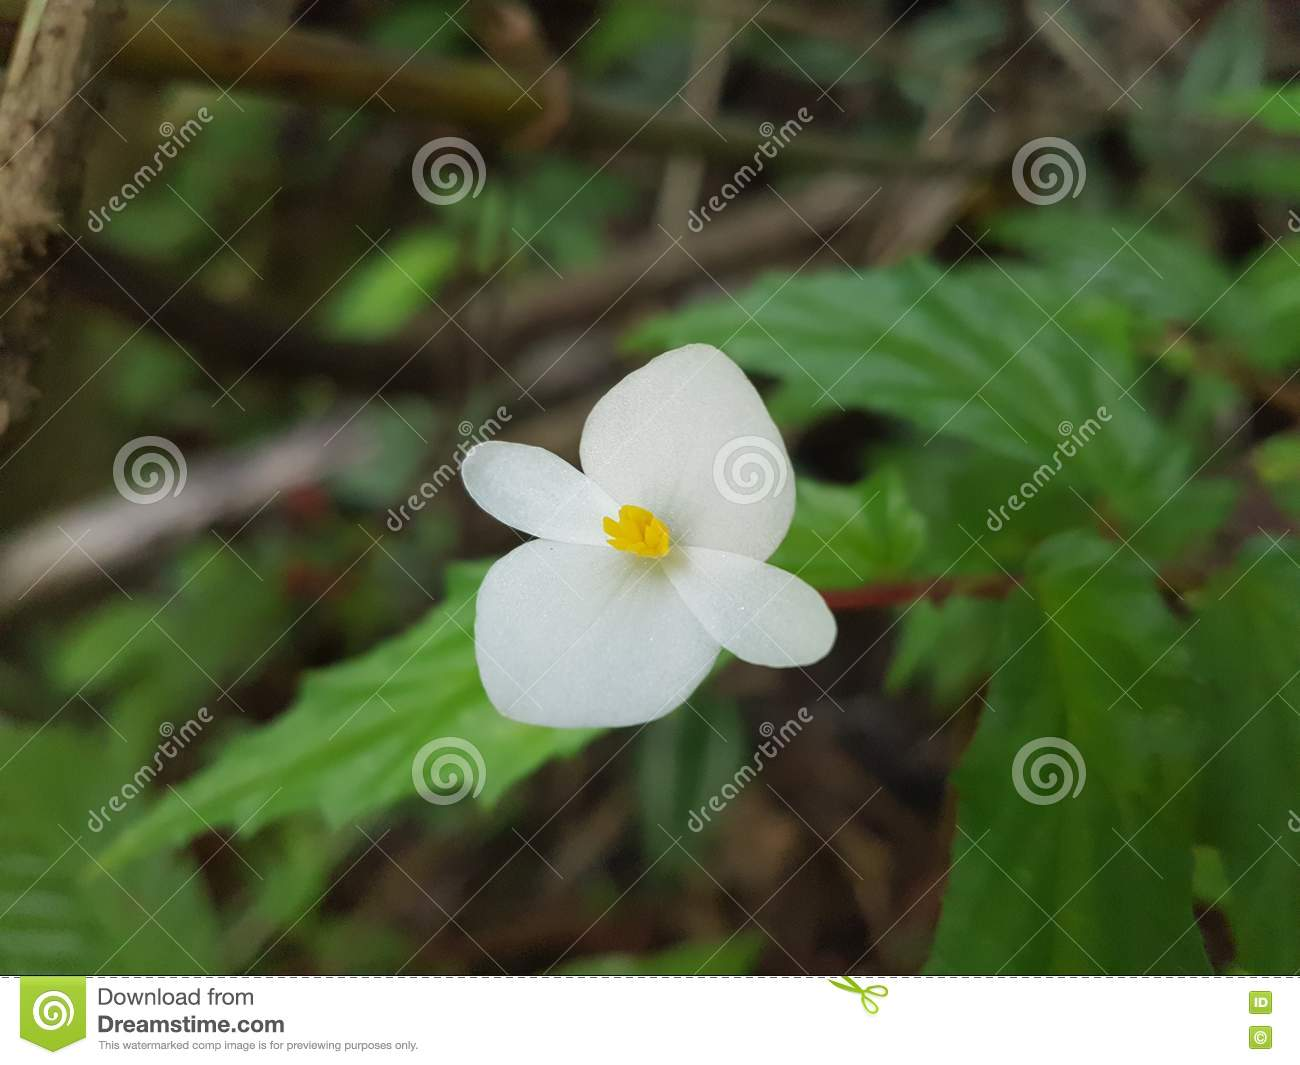 Tropical Flower Stock Photo Image Of White Center Tropical 81930950